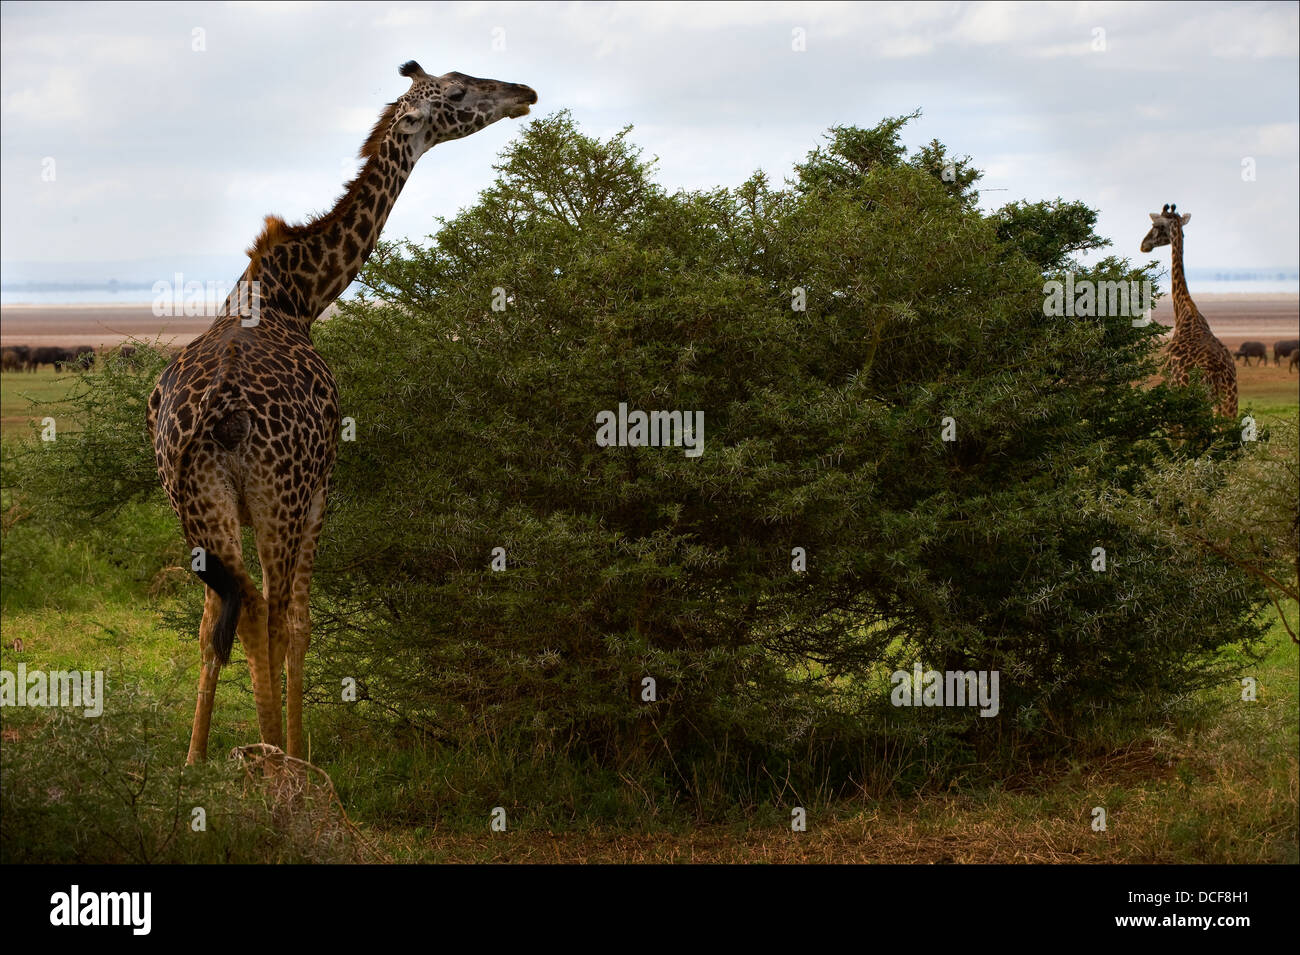 wildanimal stockfotos wildanimal bilder alamy. Black Bedroom Furniture Sets. Home Design Ideas